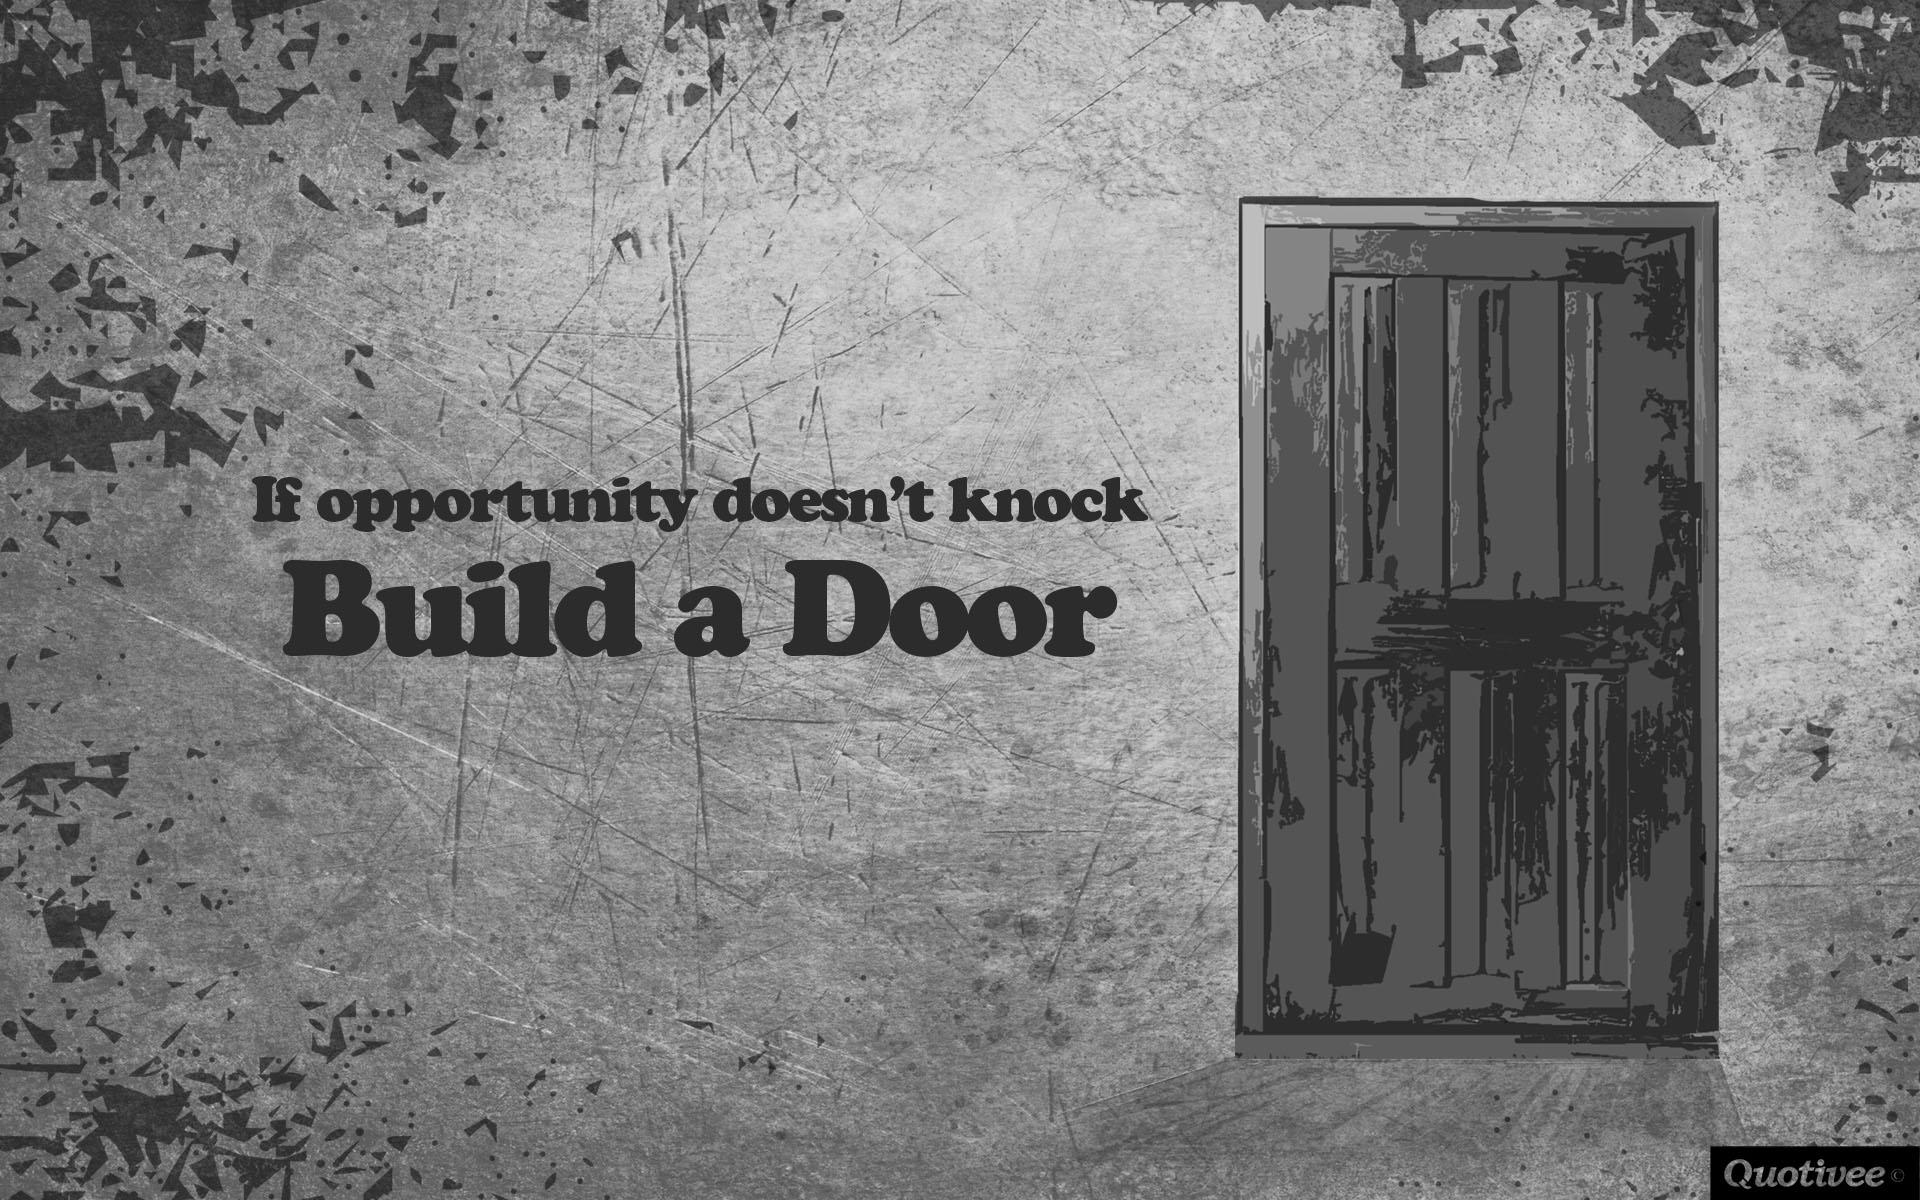 Walt Disney Wallpaper Quotes If Opportunity Doesn T Knock Inspirational Quotes Quotivee